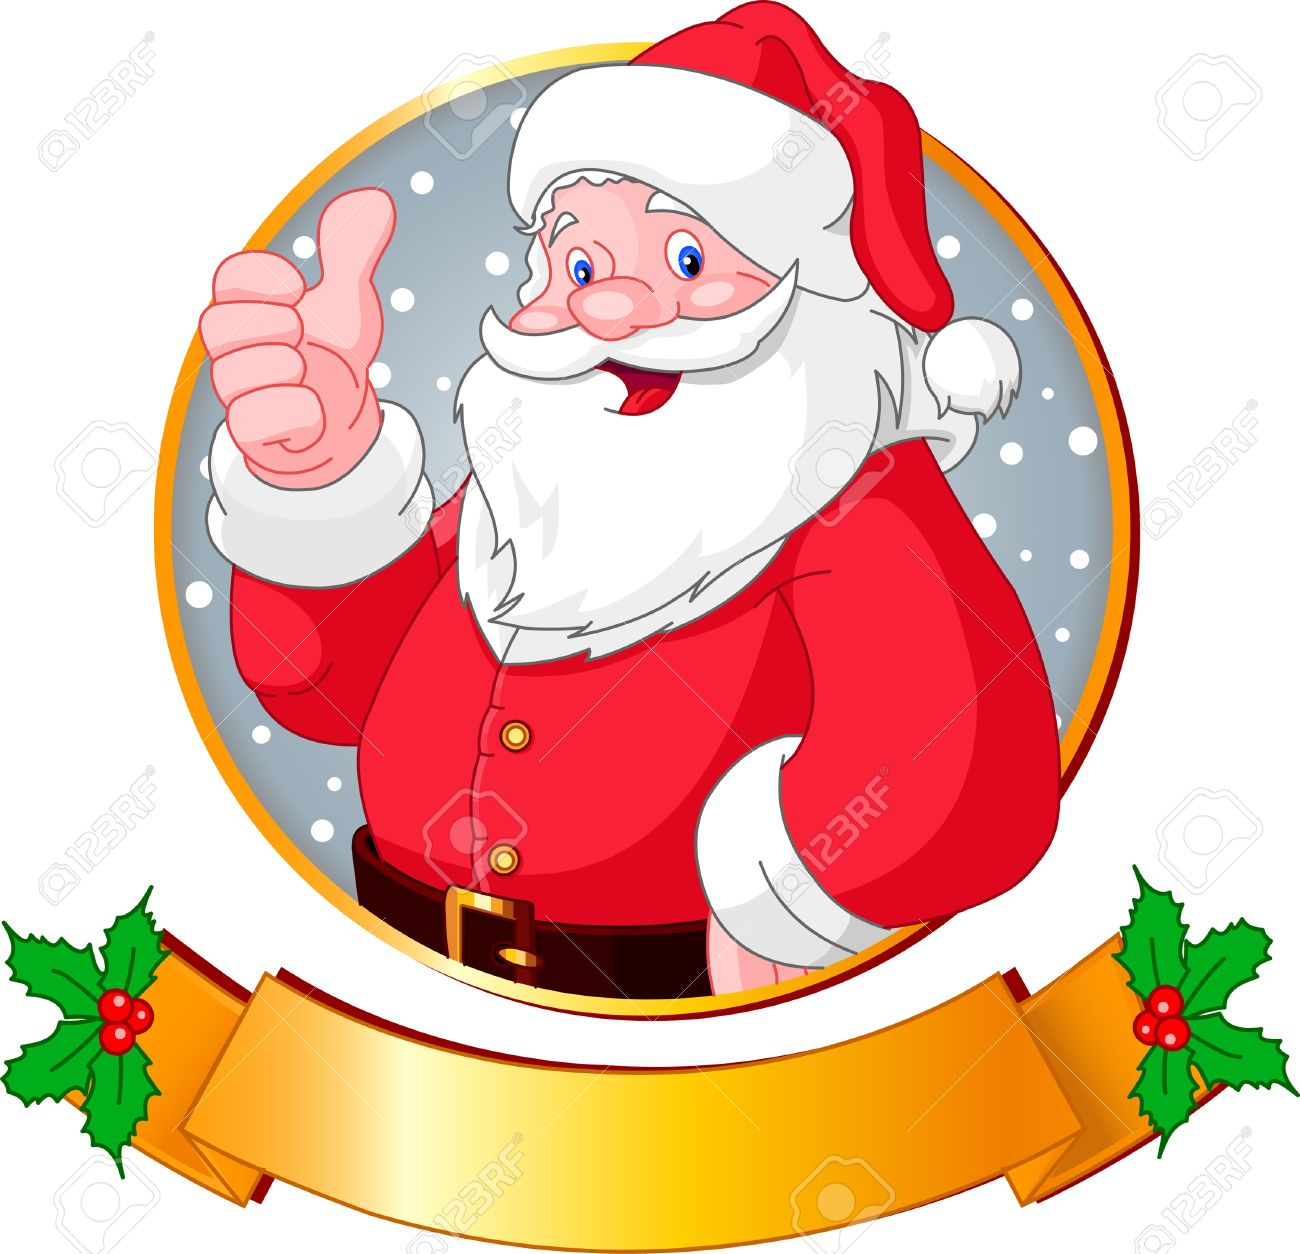 Christmas greeting card with santa claus royalty free cliparts christmas greeting card with santa claus stock vector 5959236 m4hsunfo